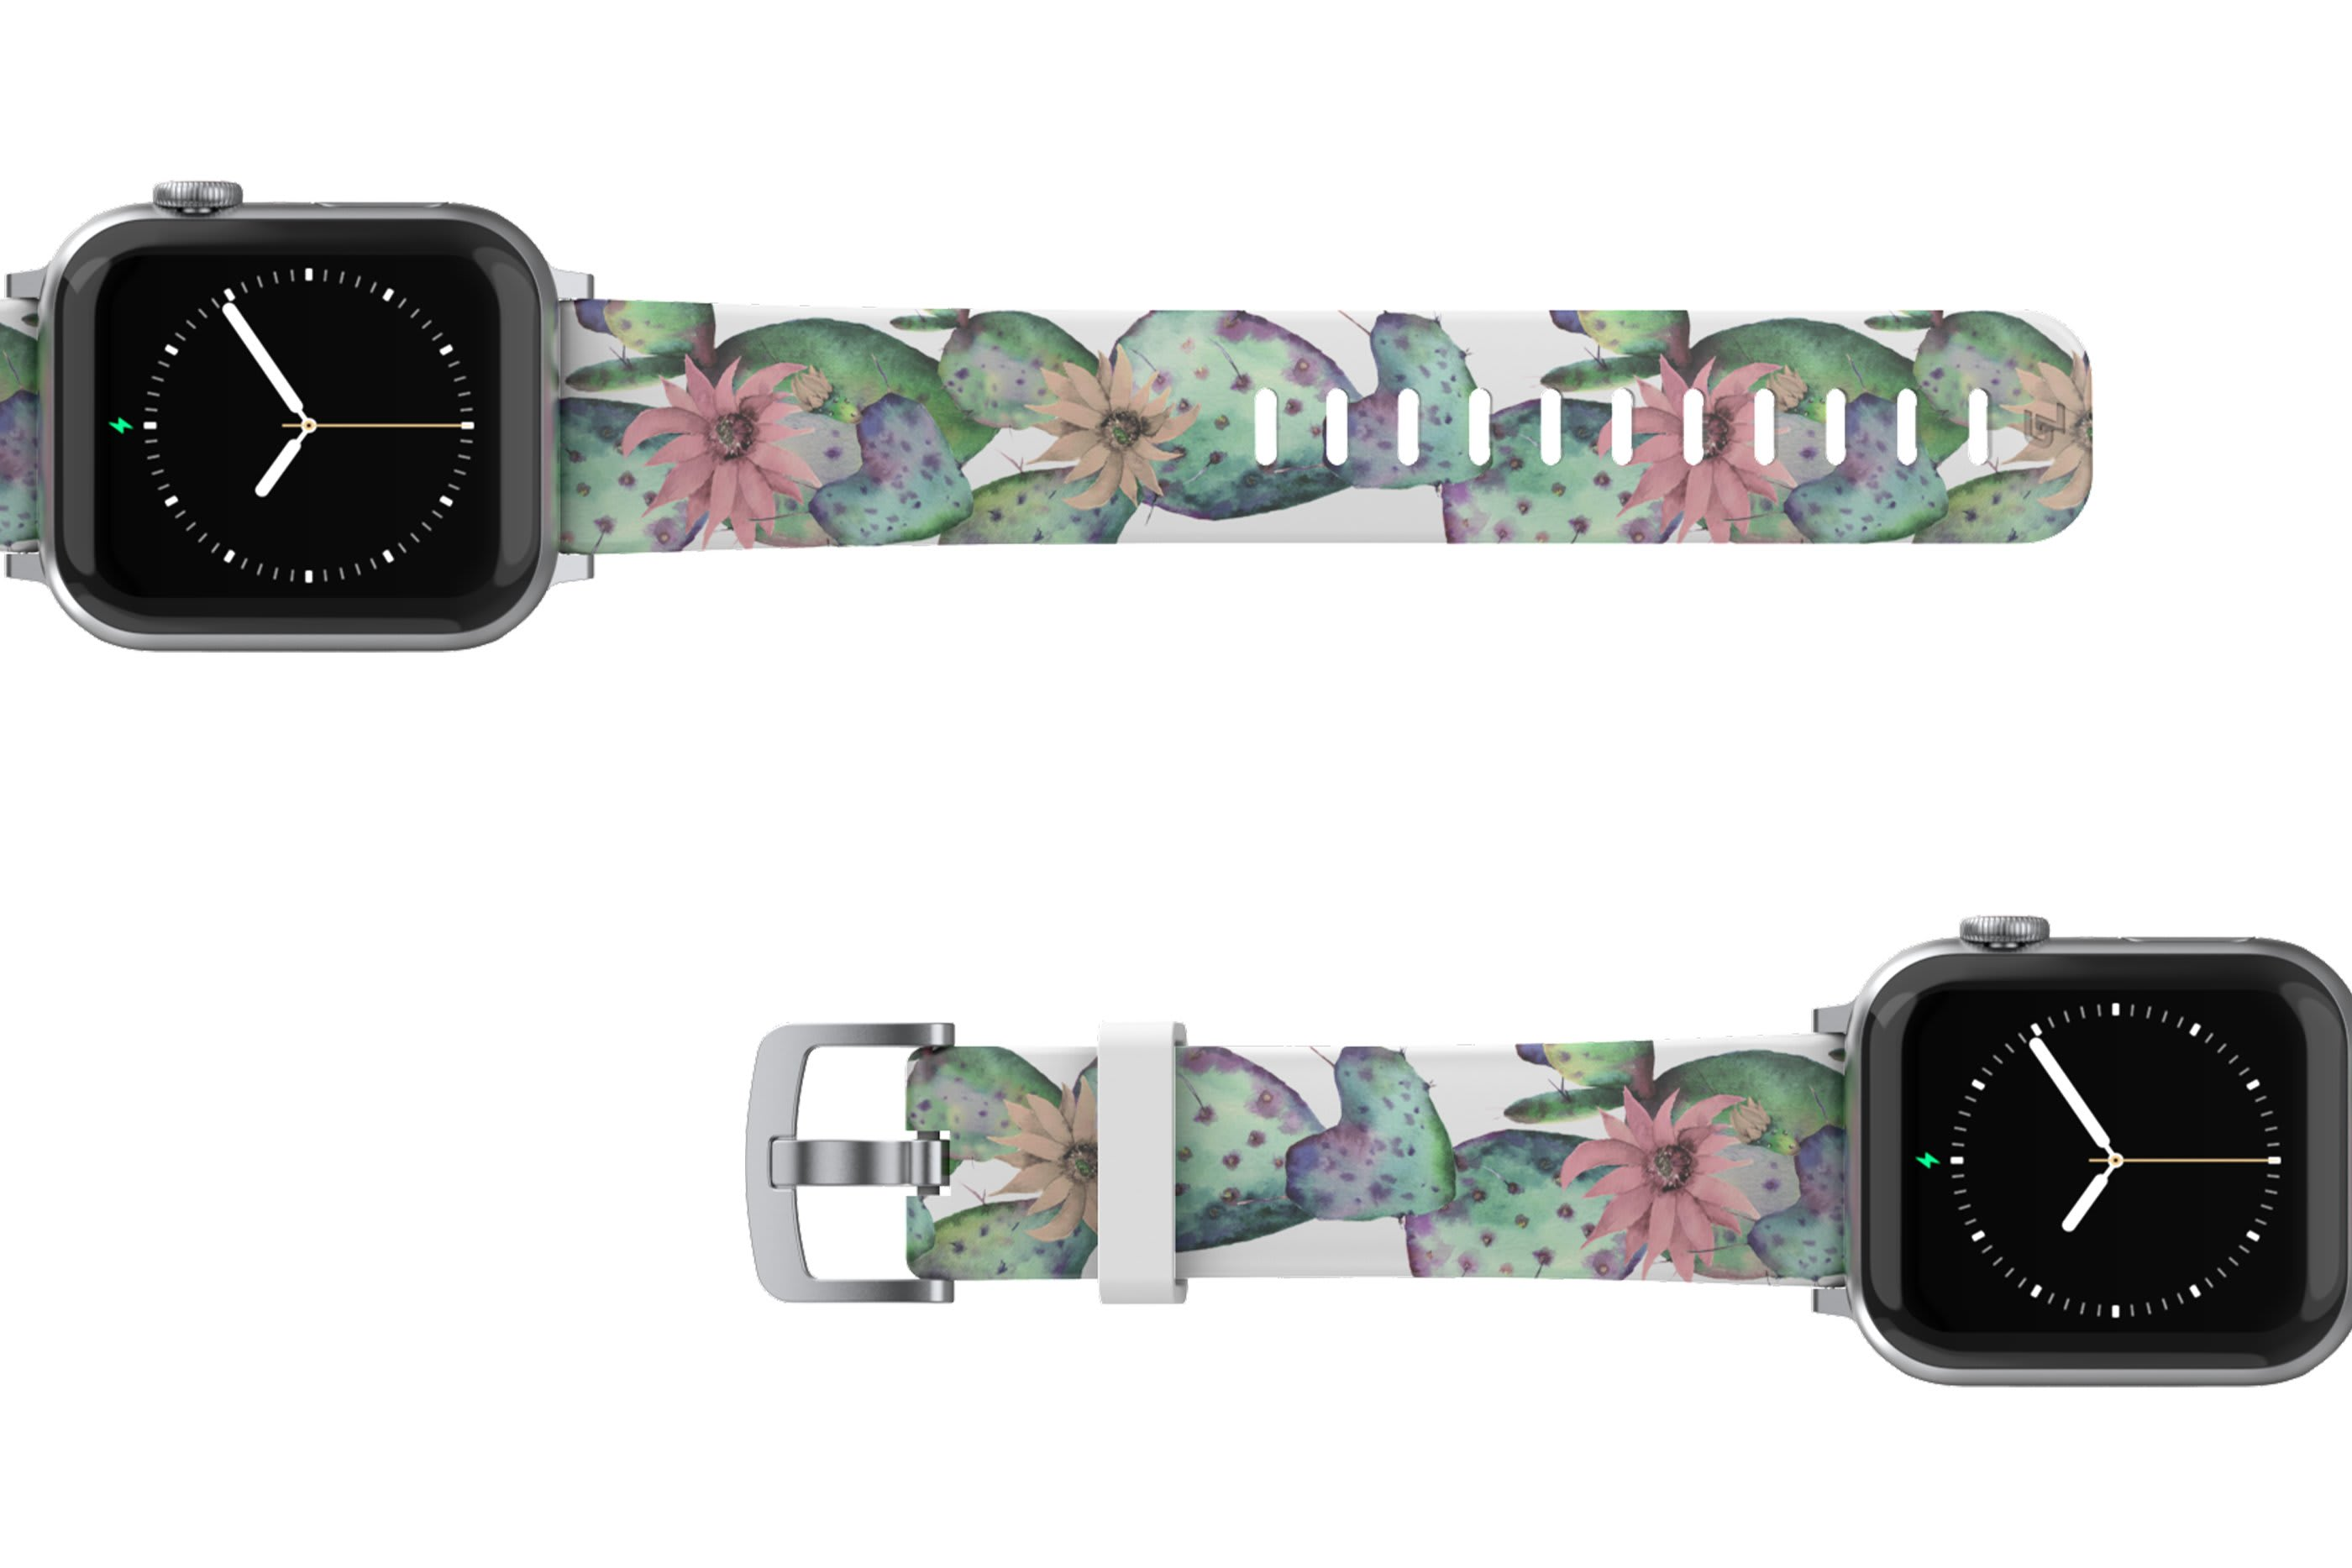 Cactus Bloom Apple Watch Band with silver hardware viewed top down